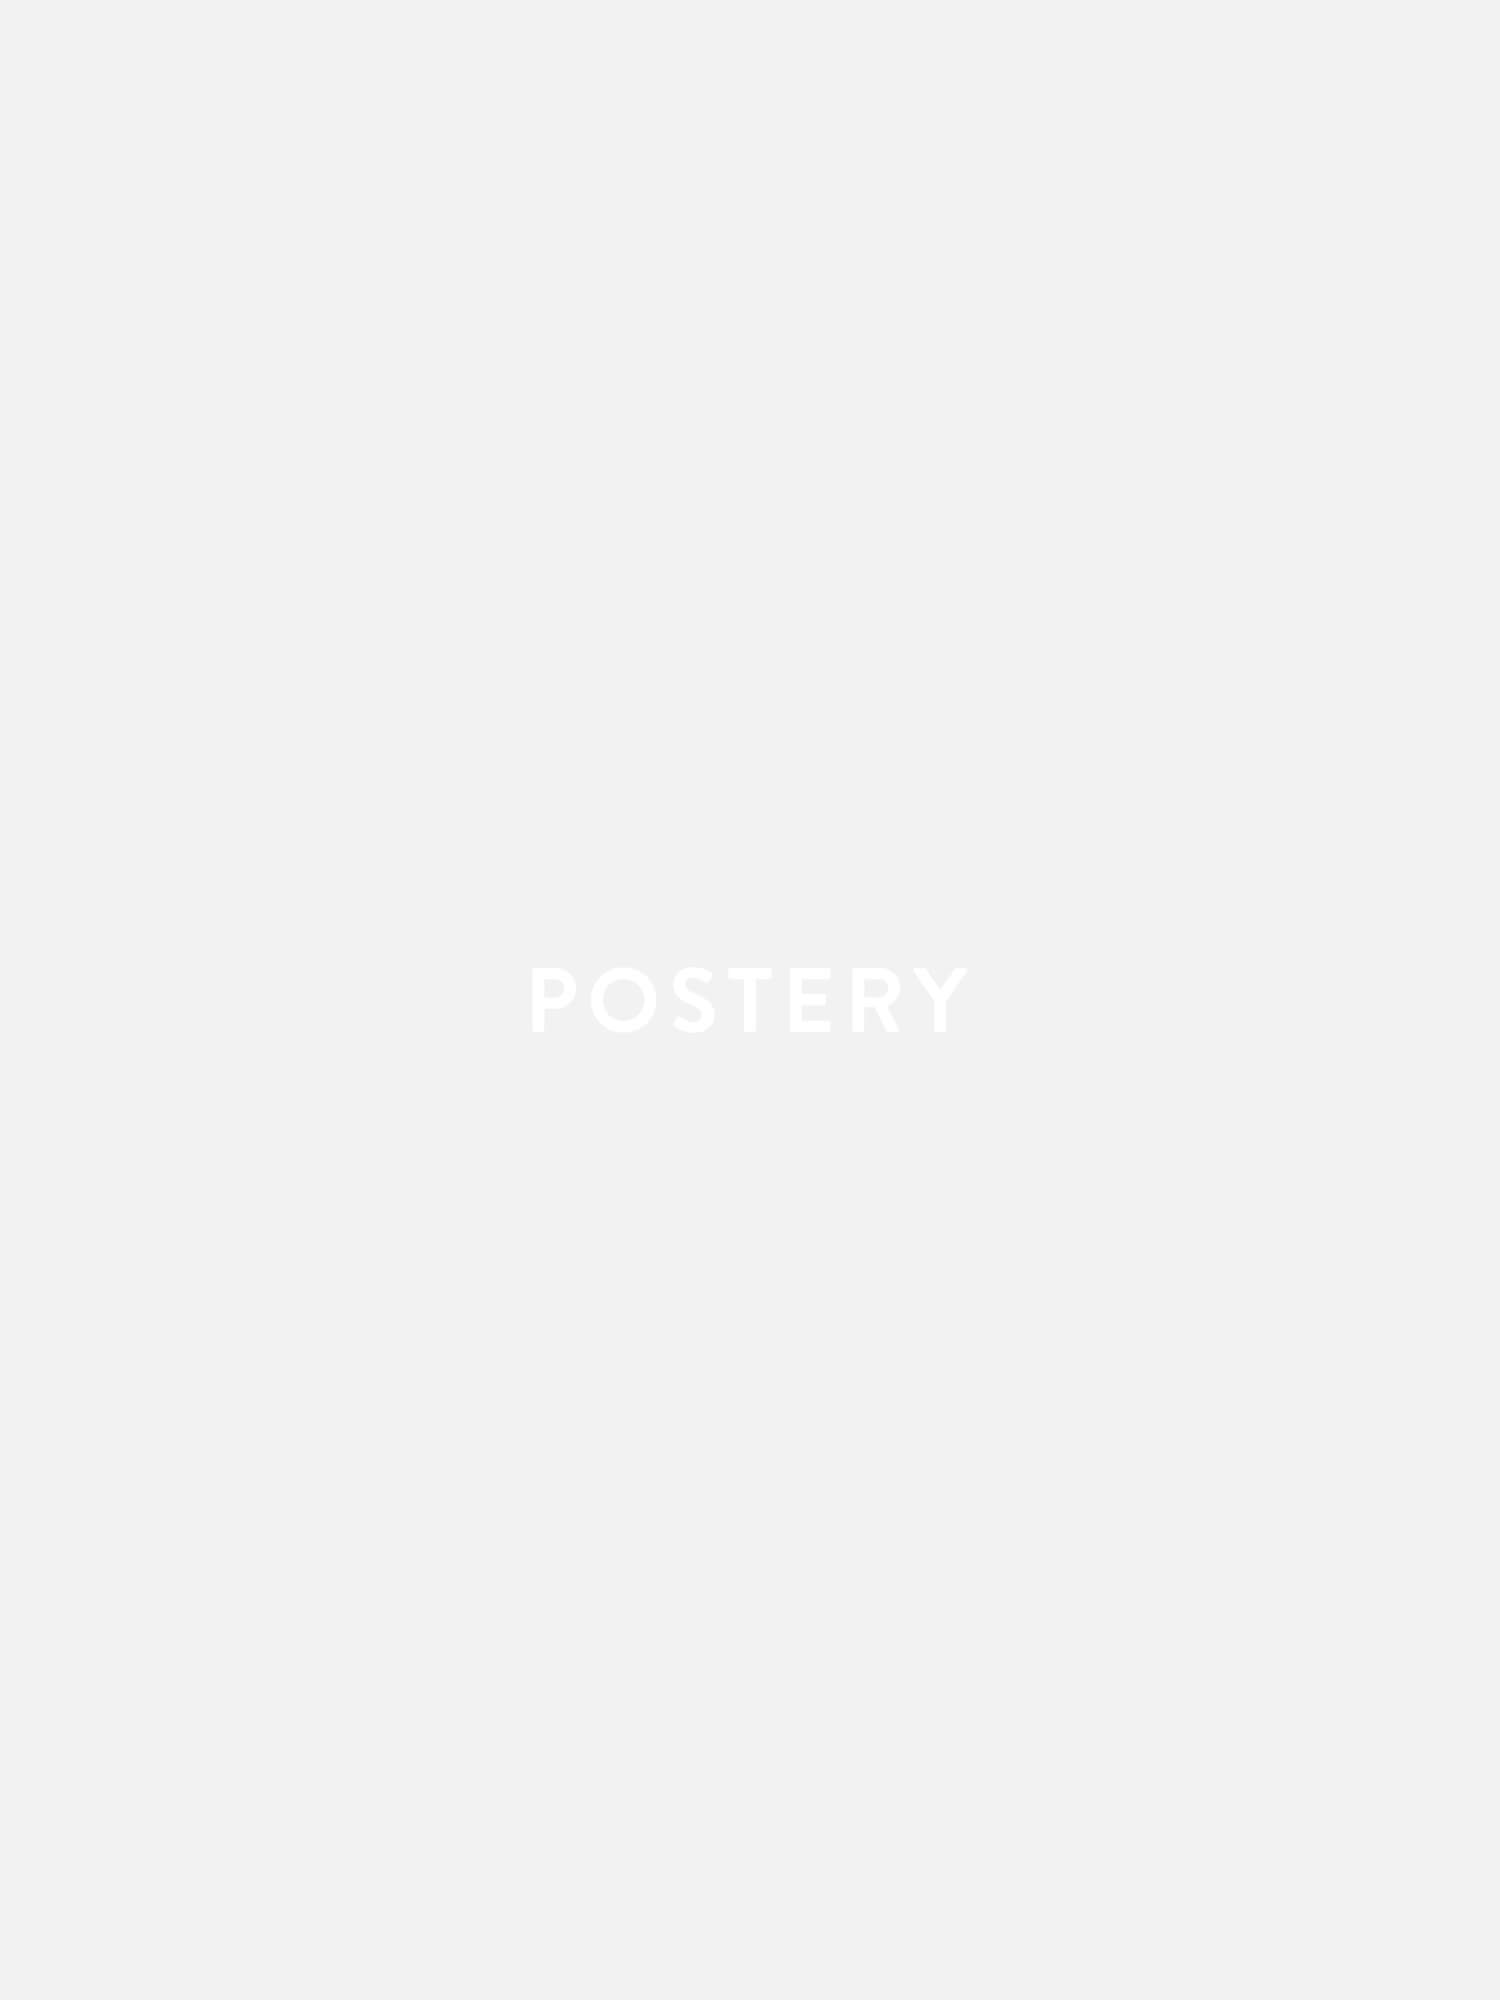 Gallery Wall #6907